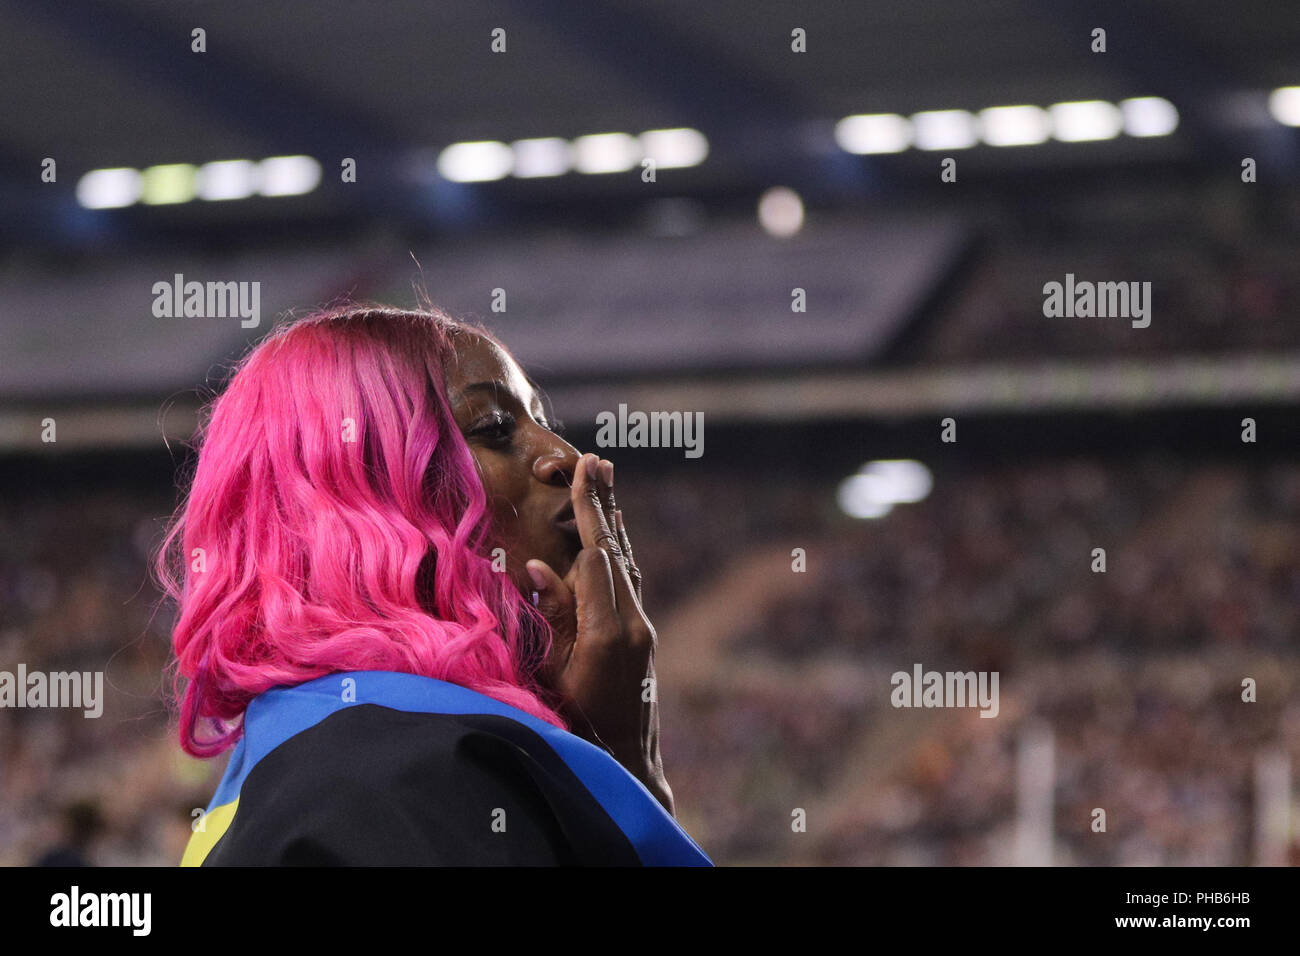 Brussels, Belgium. 31st Aug, 2018. Shaunae Miller-Uibo of Bahamas celebrates after the women's 200m race at the IAAF Diamond League athletics meeting in Brussels, Belgium, Aug. 31, 2018. Shaunae Miller-Uibo claimed the title in a time of 22.12 seconds. Credit: Zheng Huansong/Xinhua/Alamy Live News - Stock Image